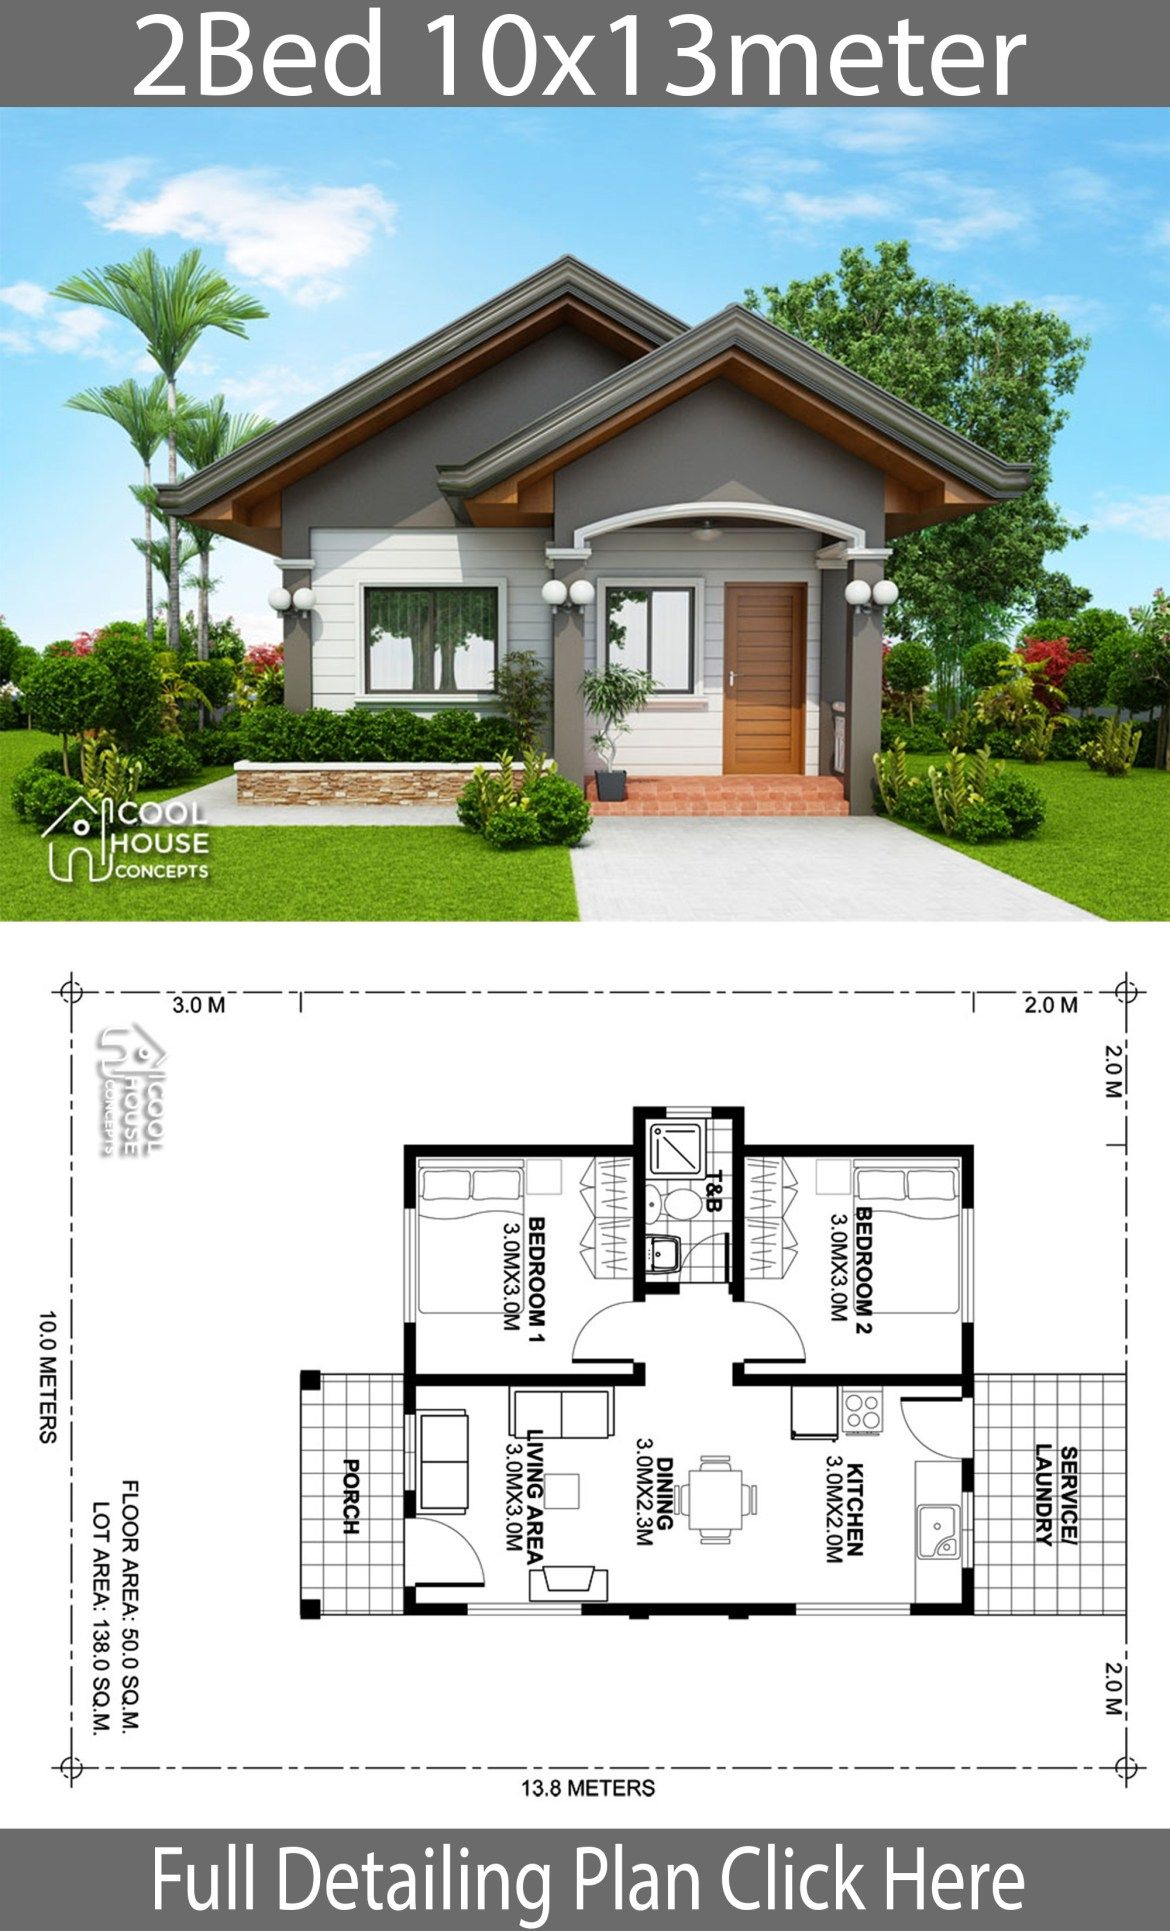 Home Design Plan 10x13m With 2 Bedrooms Home Planssearch Simple House Design Modern House Plans Small House Design